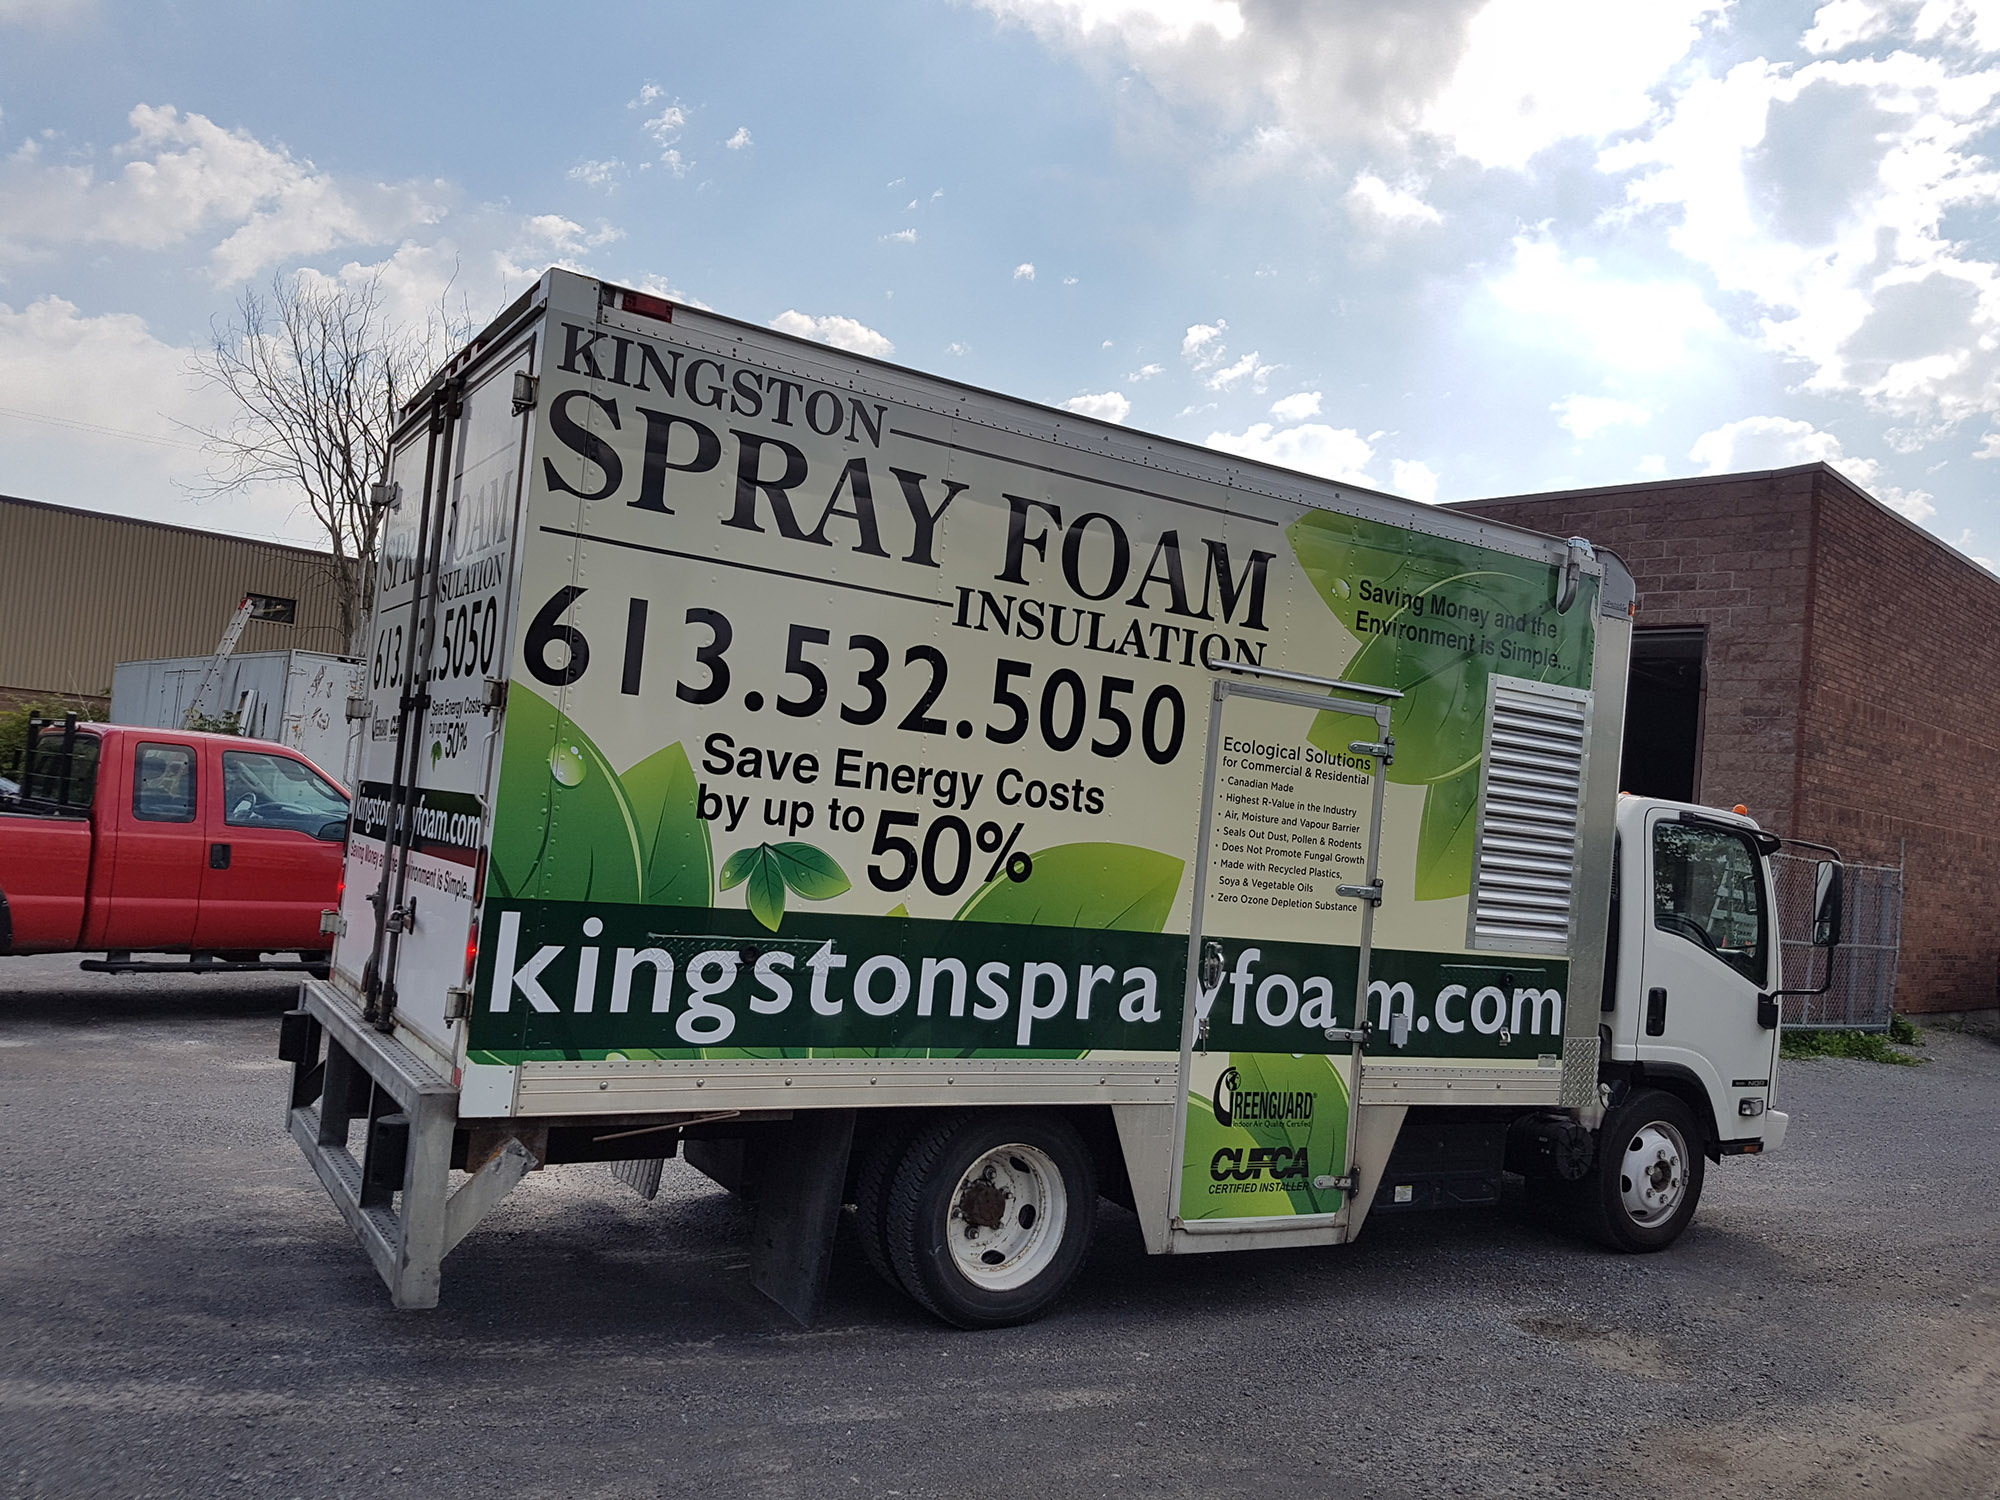 Kingston Spray Foam Cube Van